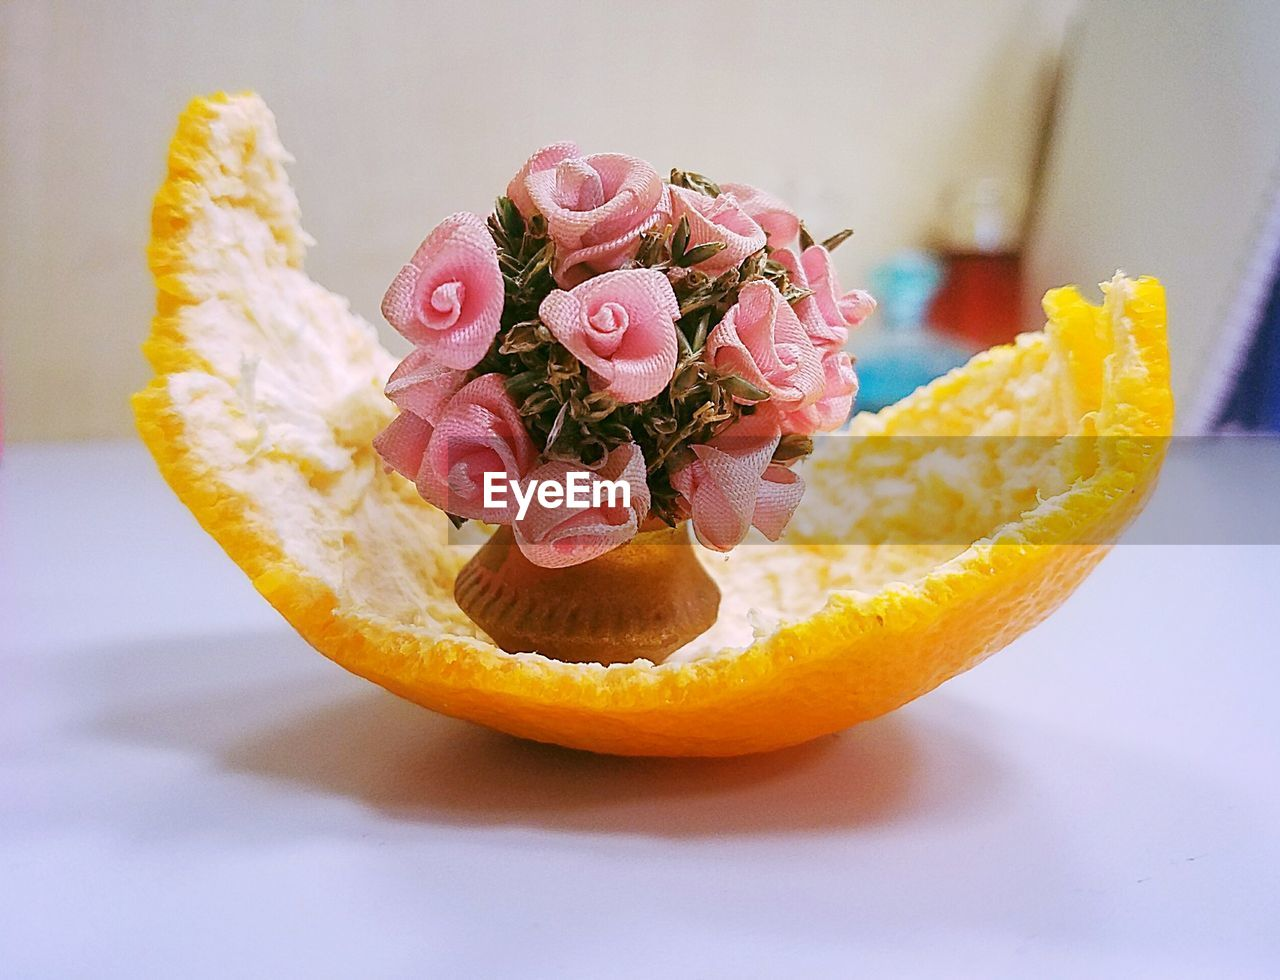 freshness, indoors, food and drink, food, close-up, still life, flower, pink color, flowering plant, no people, plant, ready-to-eat, beauty in nature, table, rose, rose - flower, focus on foreground, healthy eating, indulgence, yellow, temptation, flower head, garnish